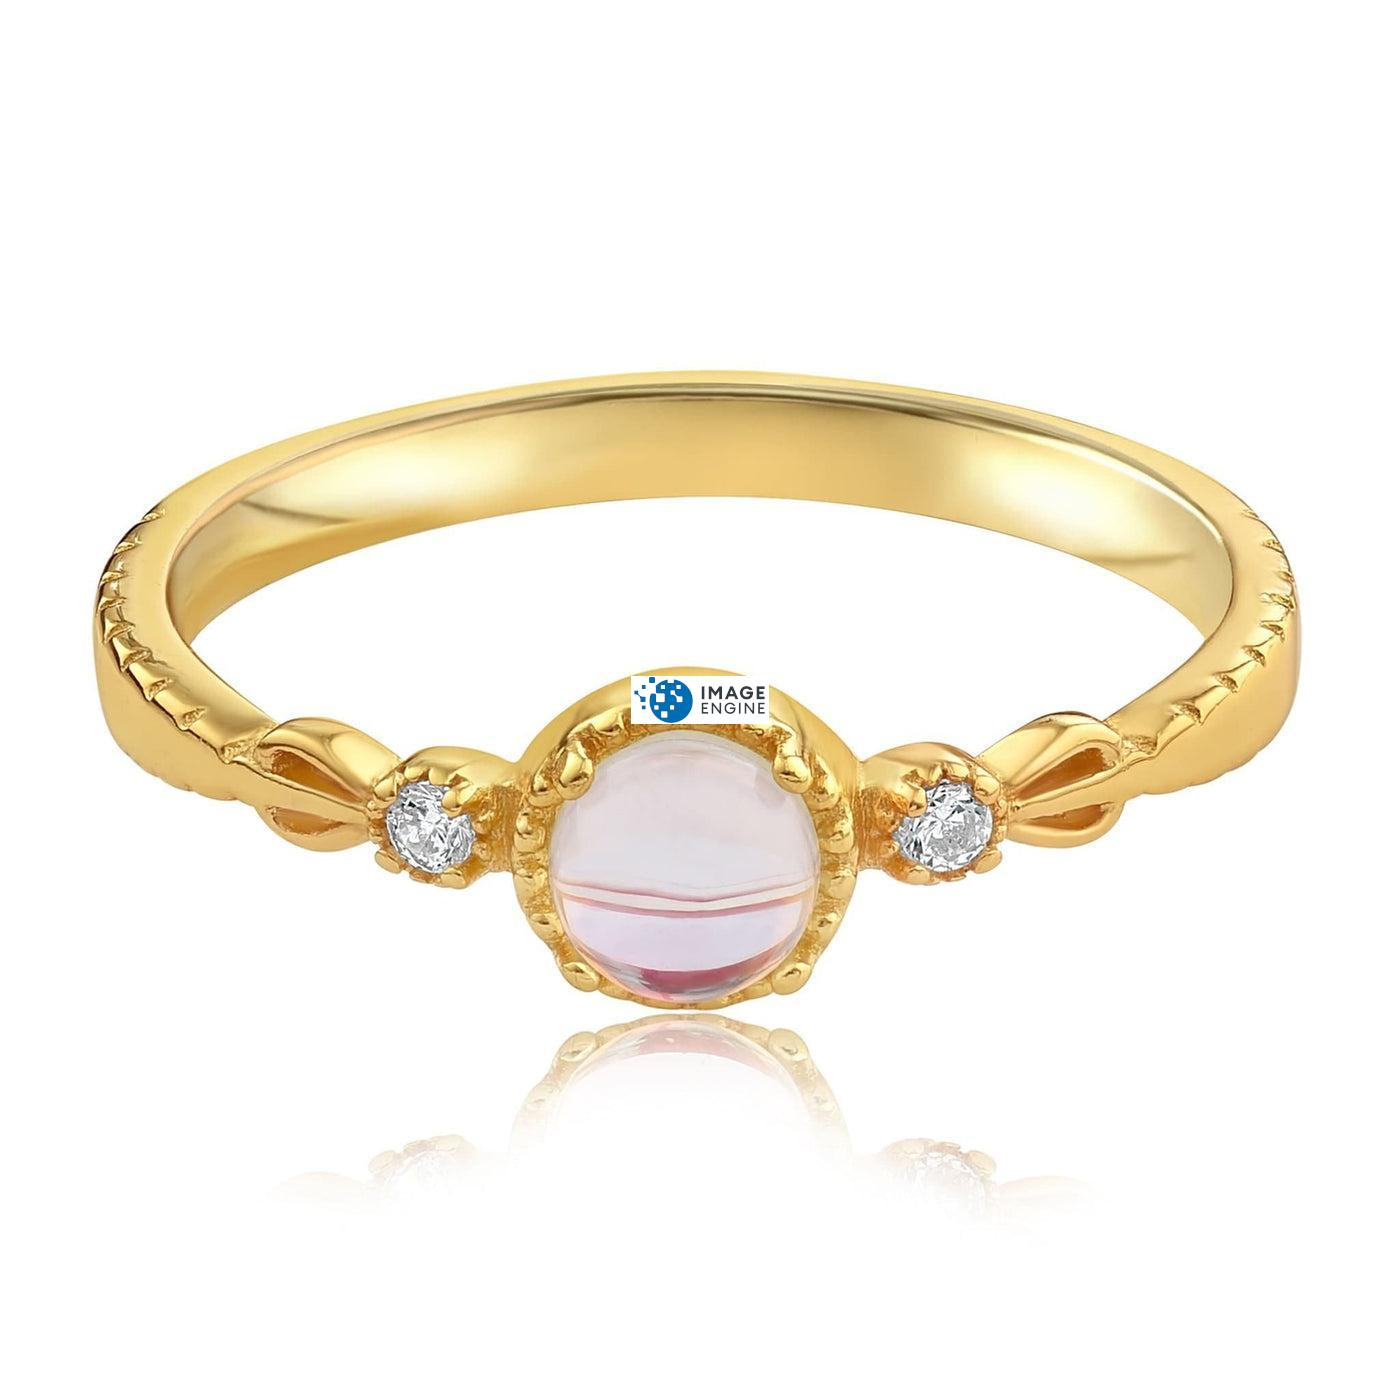 Mystic Moonstone Mood Ring - Front View Facing Down - 18K Yellow Gold Vermeil